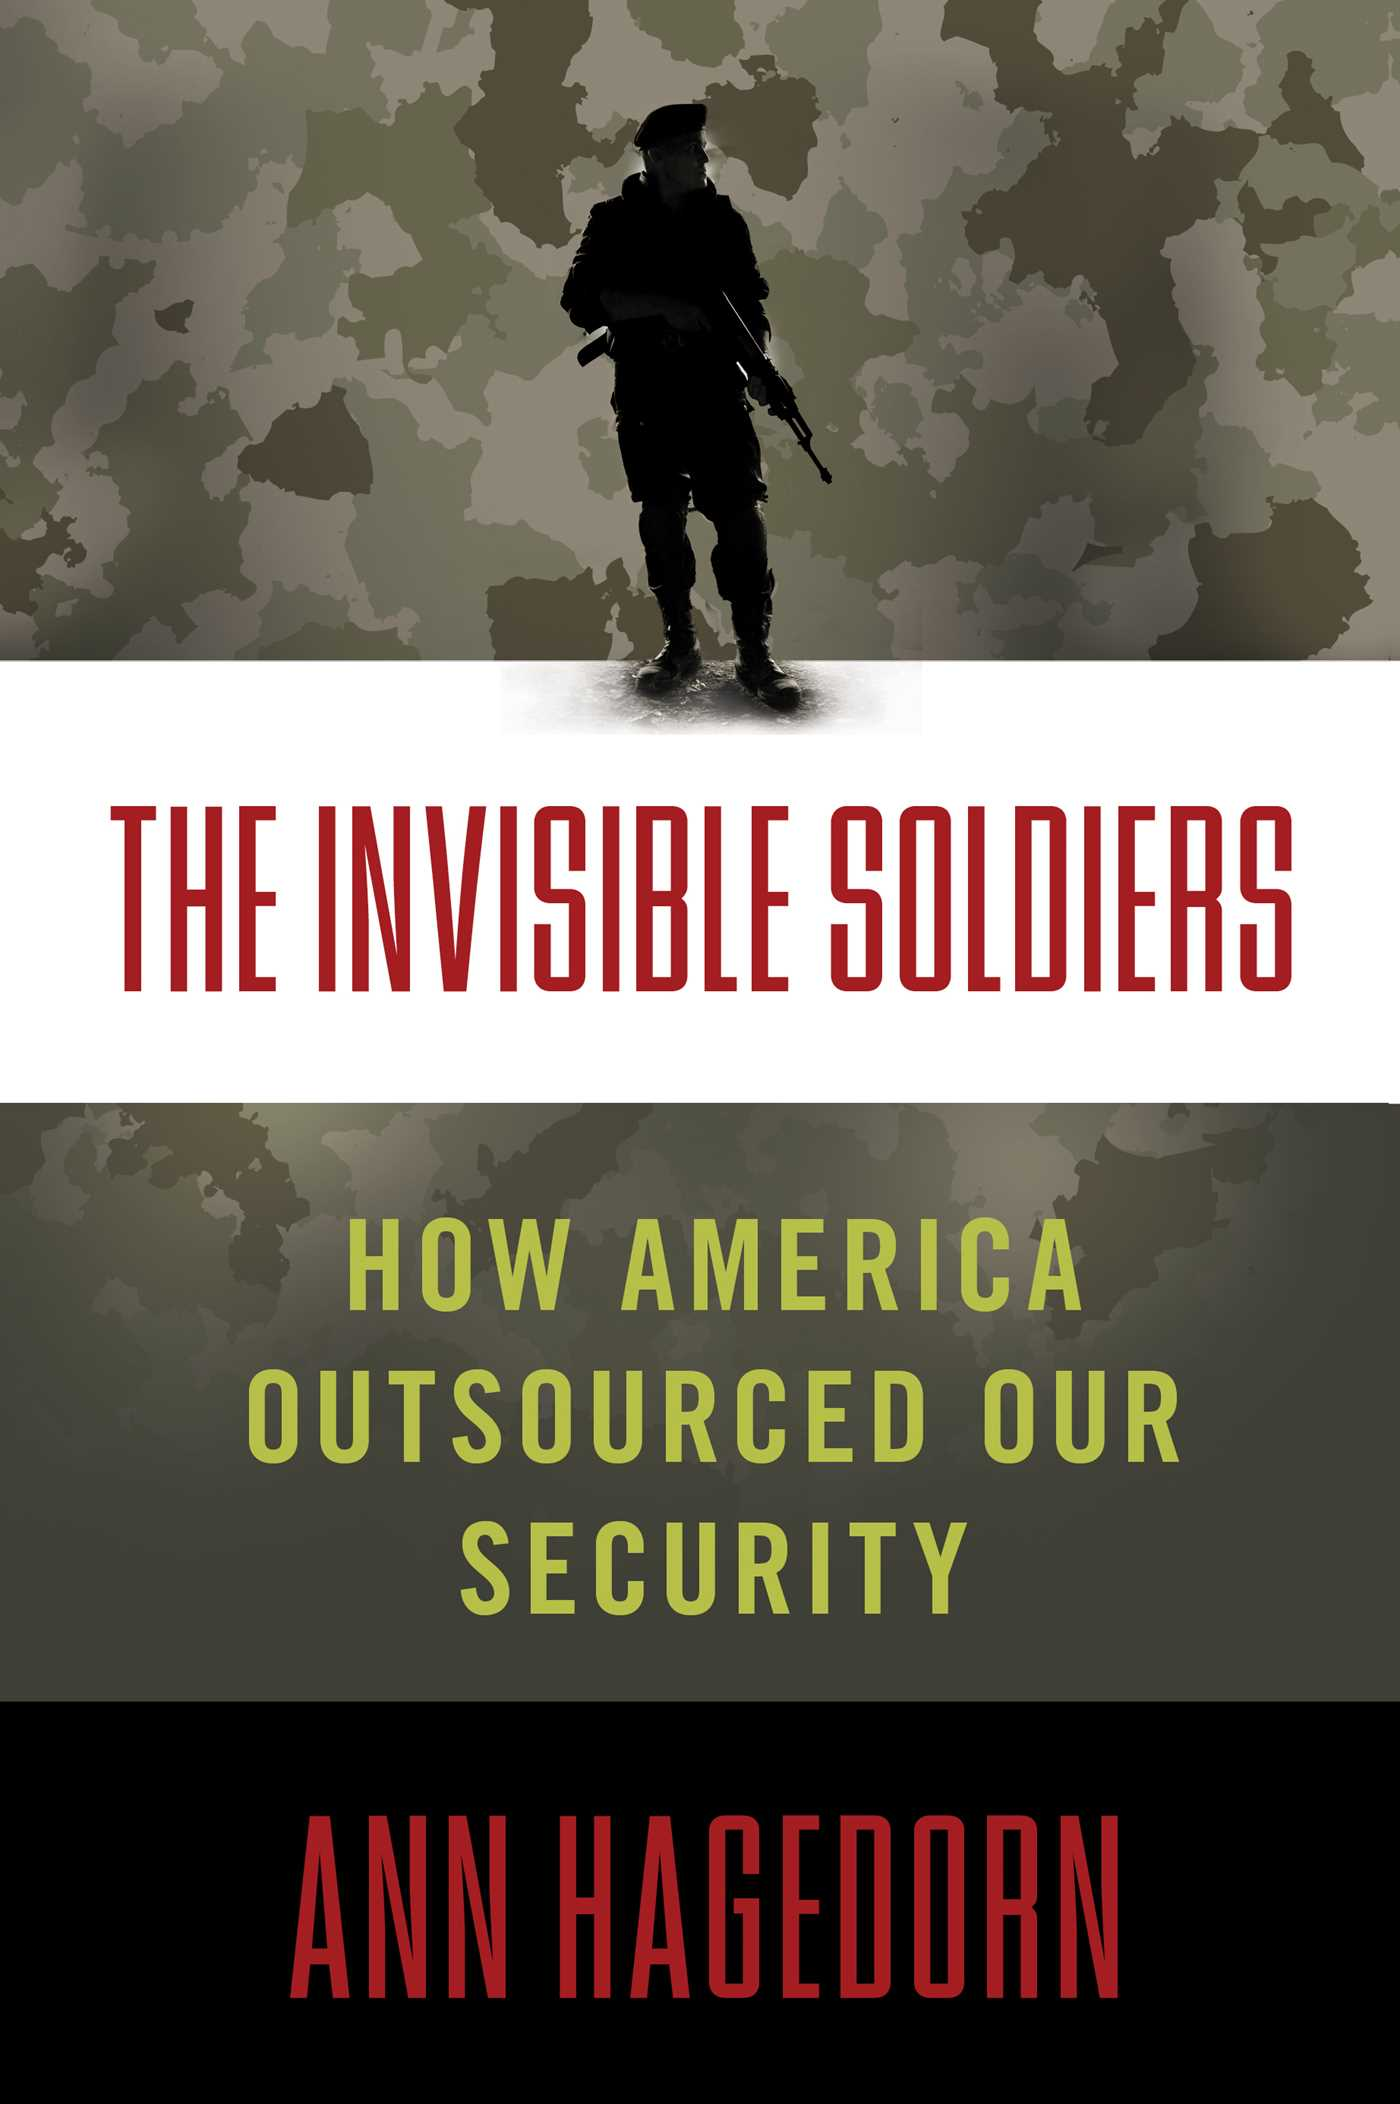 Invisible-soldiers-9781416598800_hr